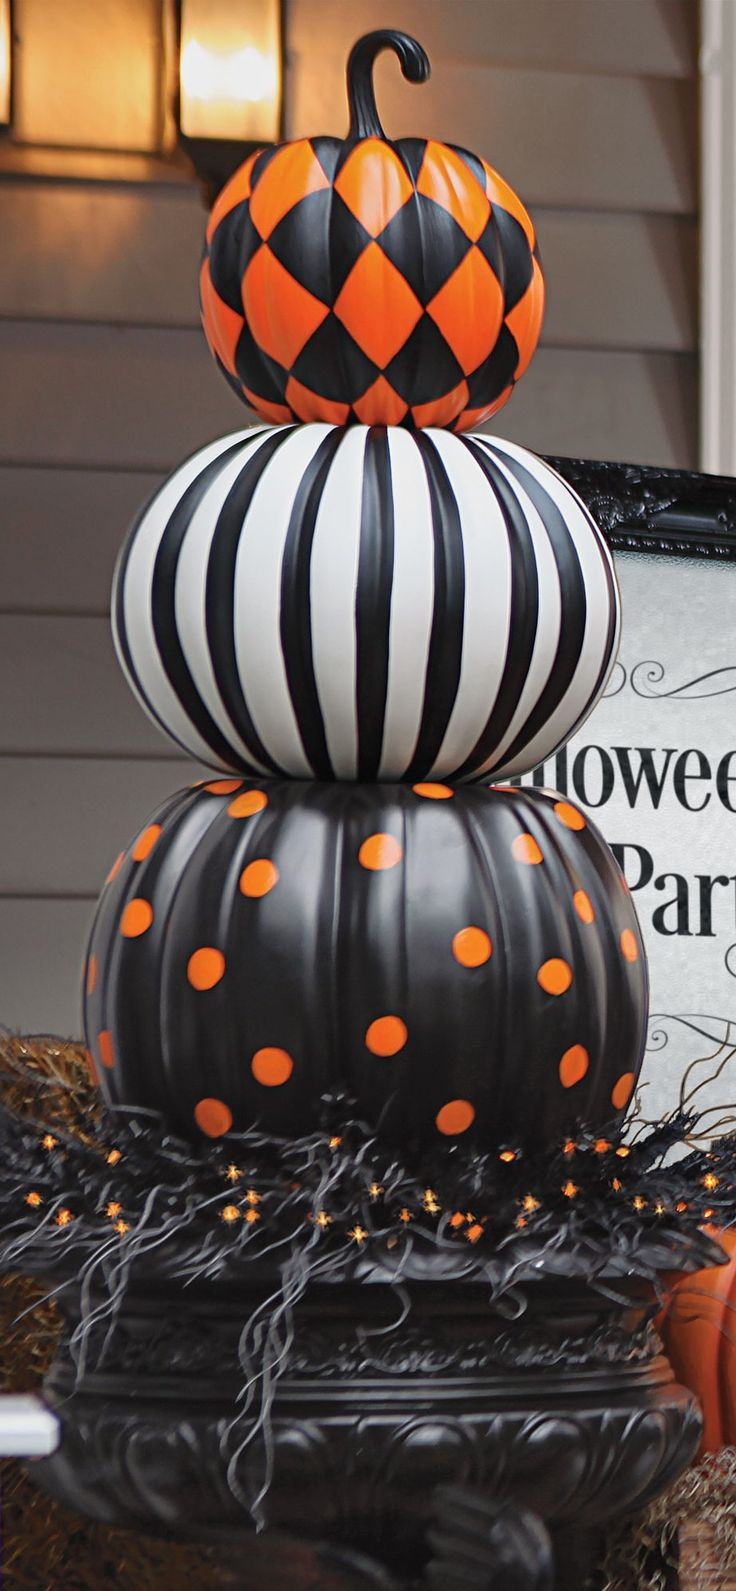 best 25 halloween designs ideas on pinterest halloween halloween pumpkins and pumpkin carving ideas diy halloween - Halloween Design Ideas